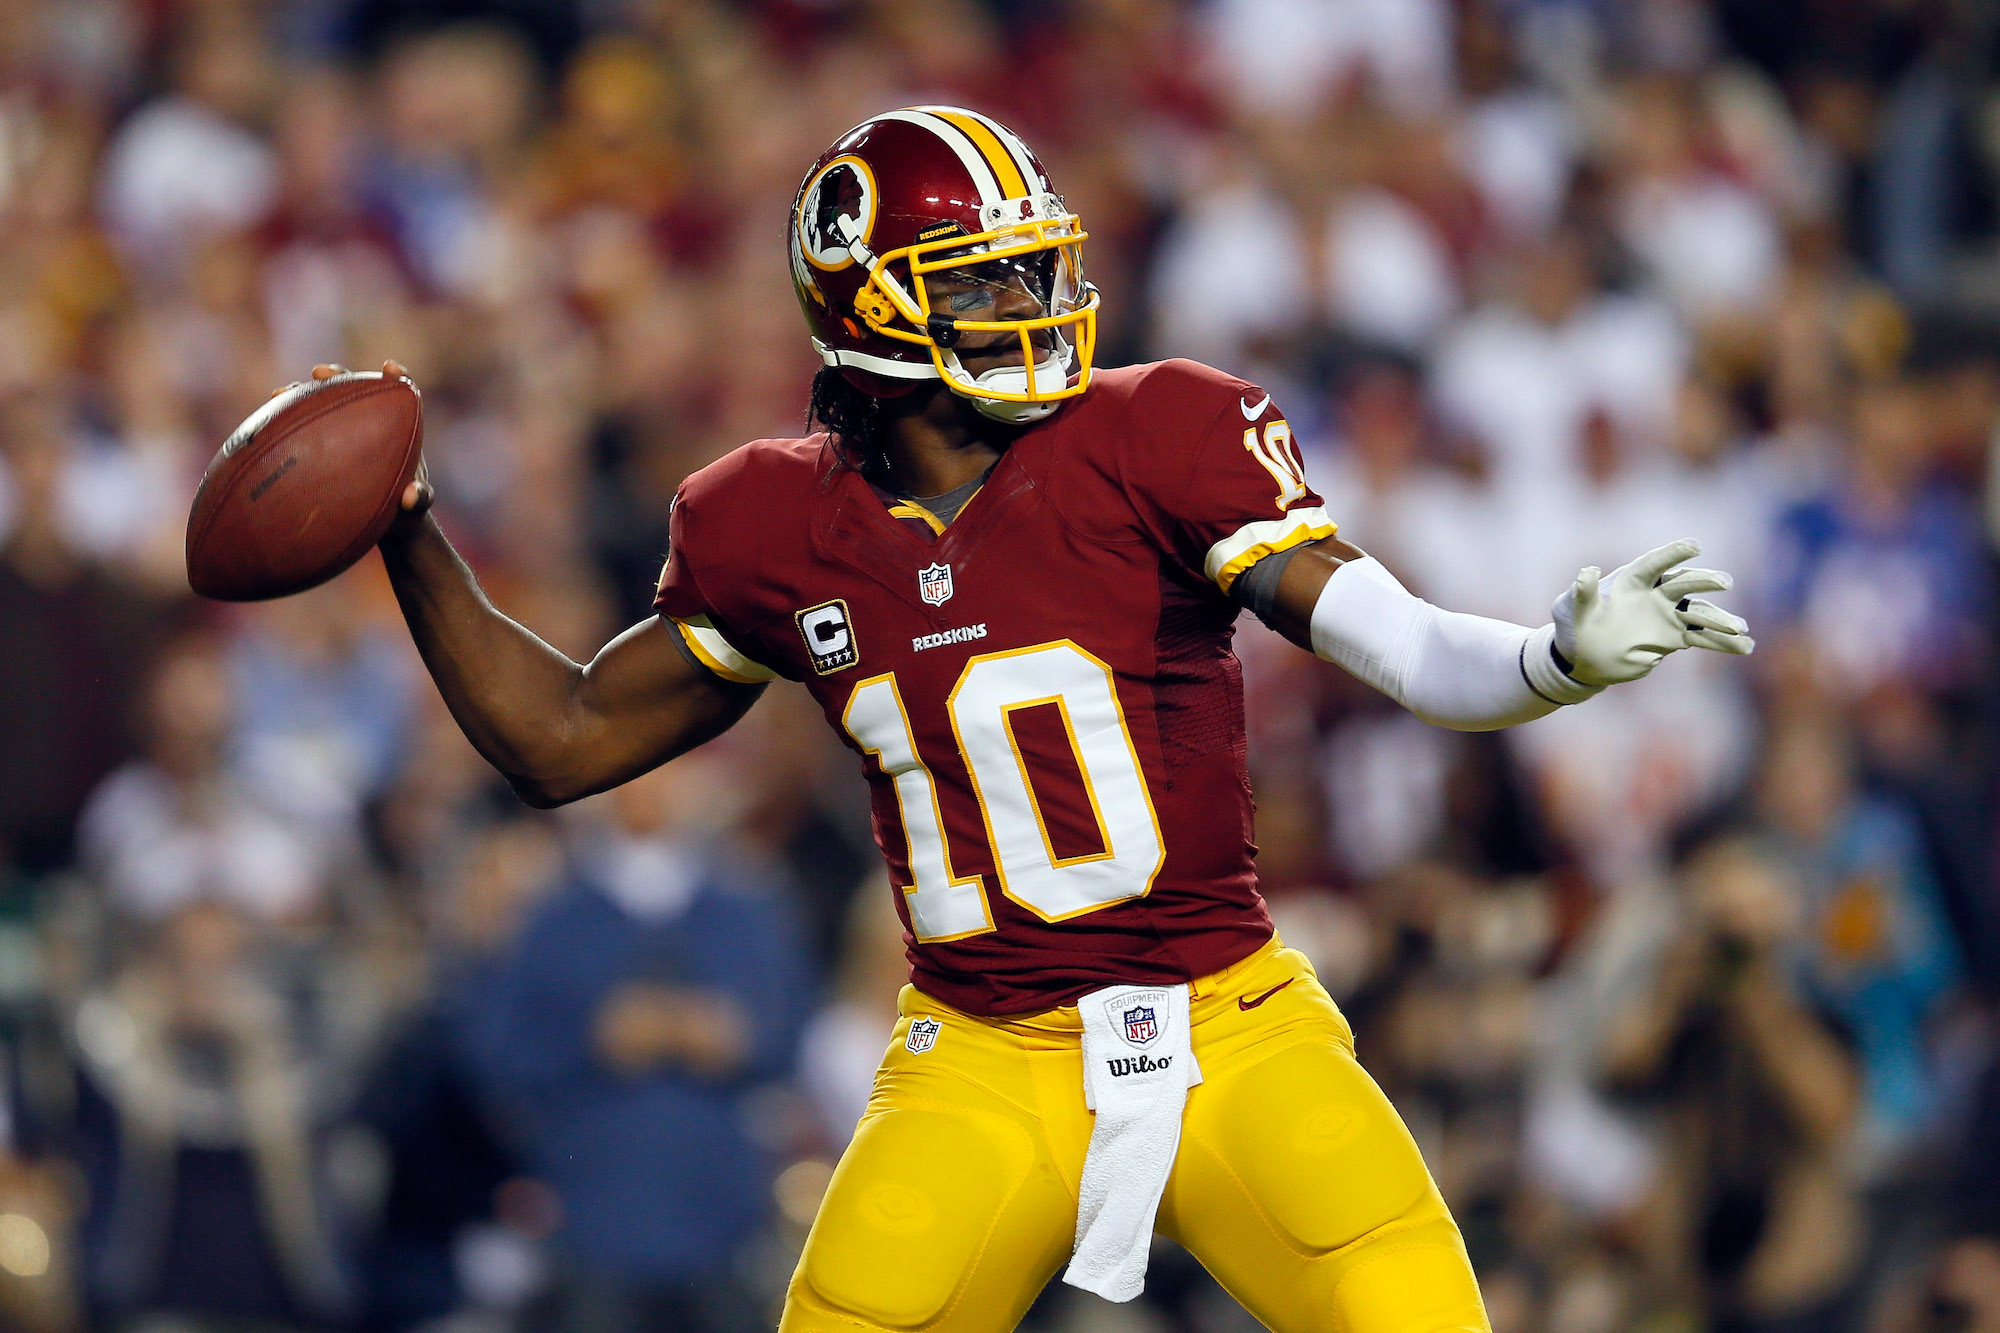 Quarterback Robert Griffin III, #10 of the Washington Redskins, throws the ball in the first quarter while taking on the New York Giants at FedExField on December 3, 2012, in Landover, Maryland.